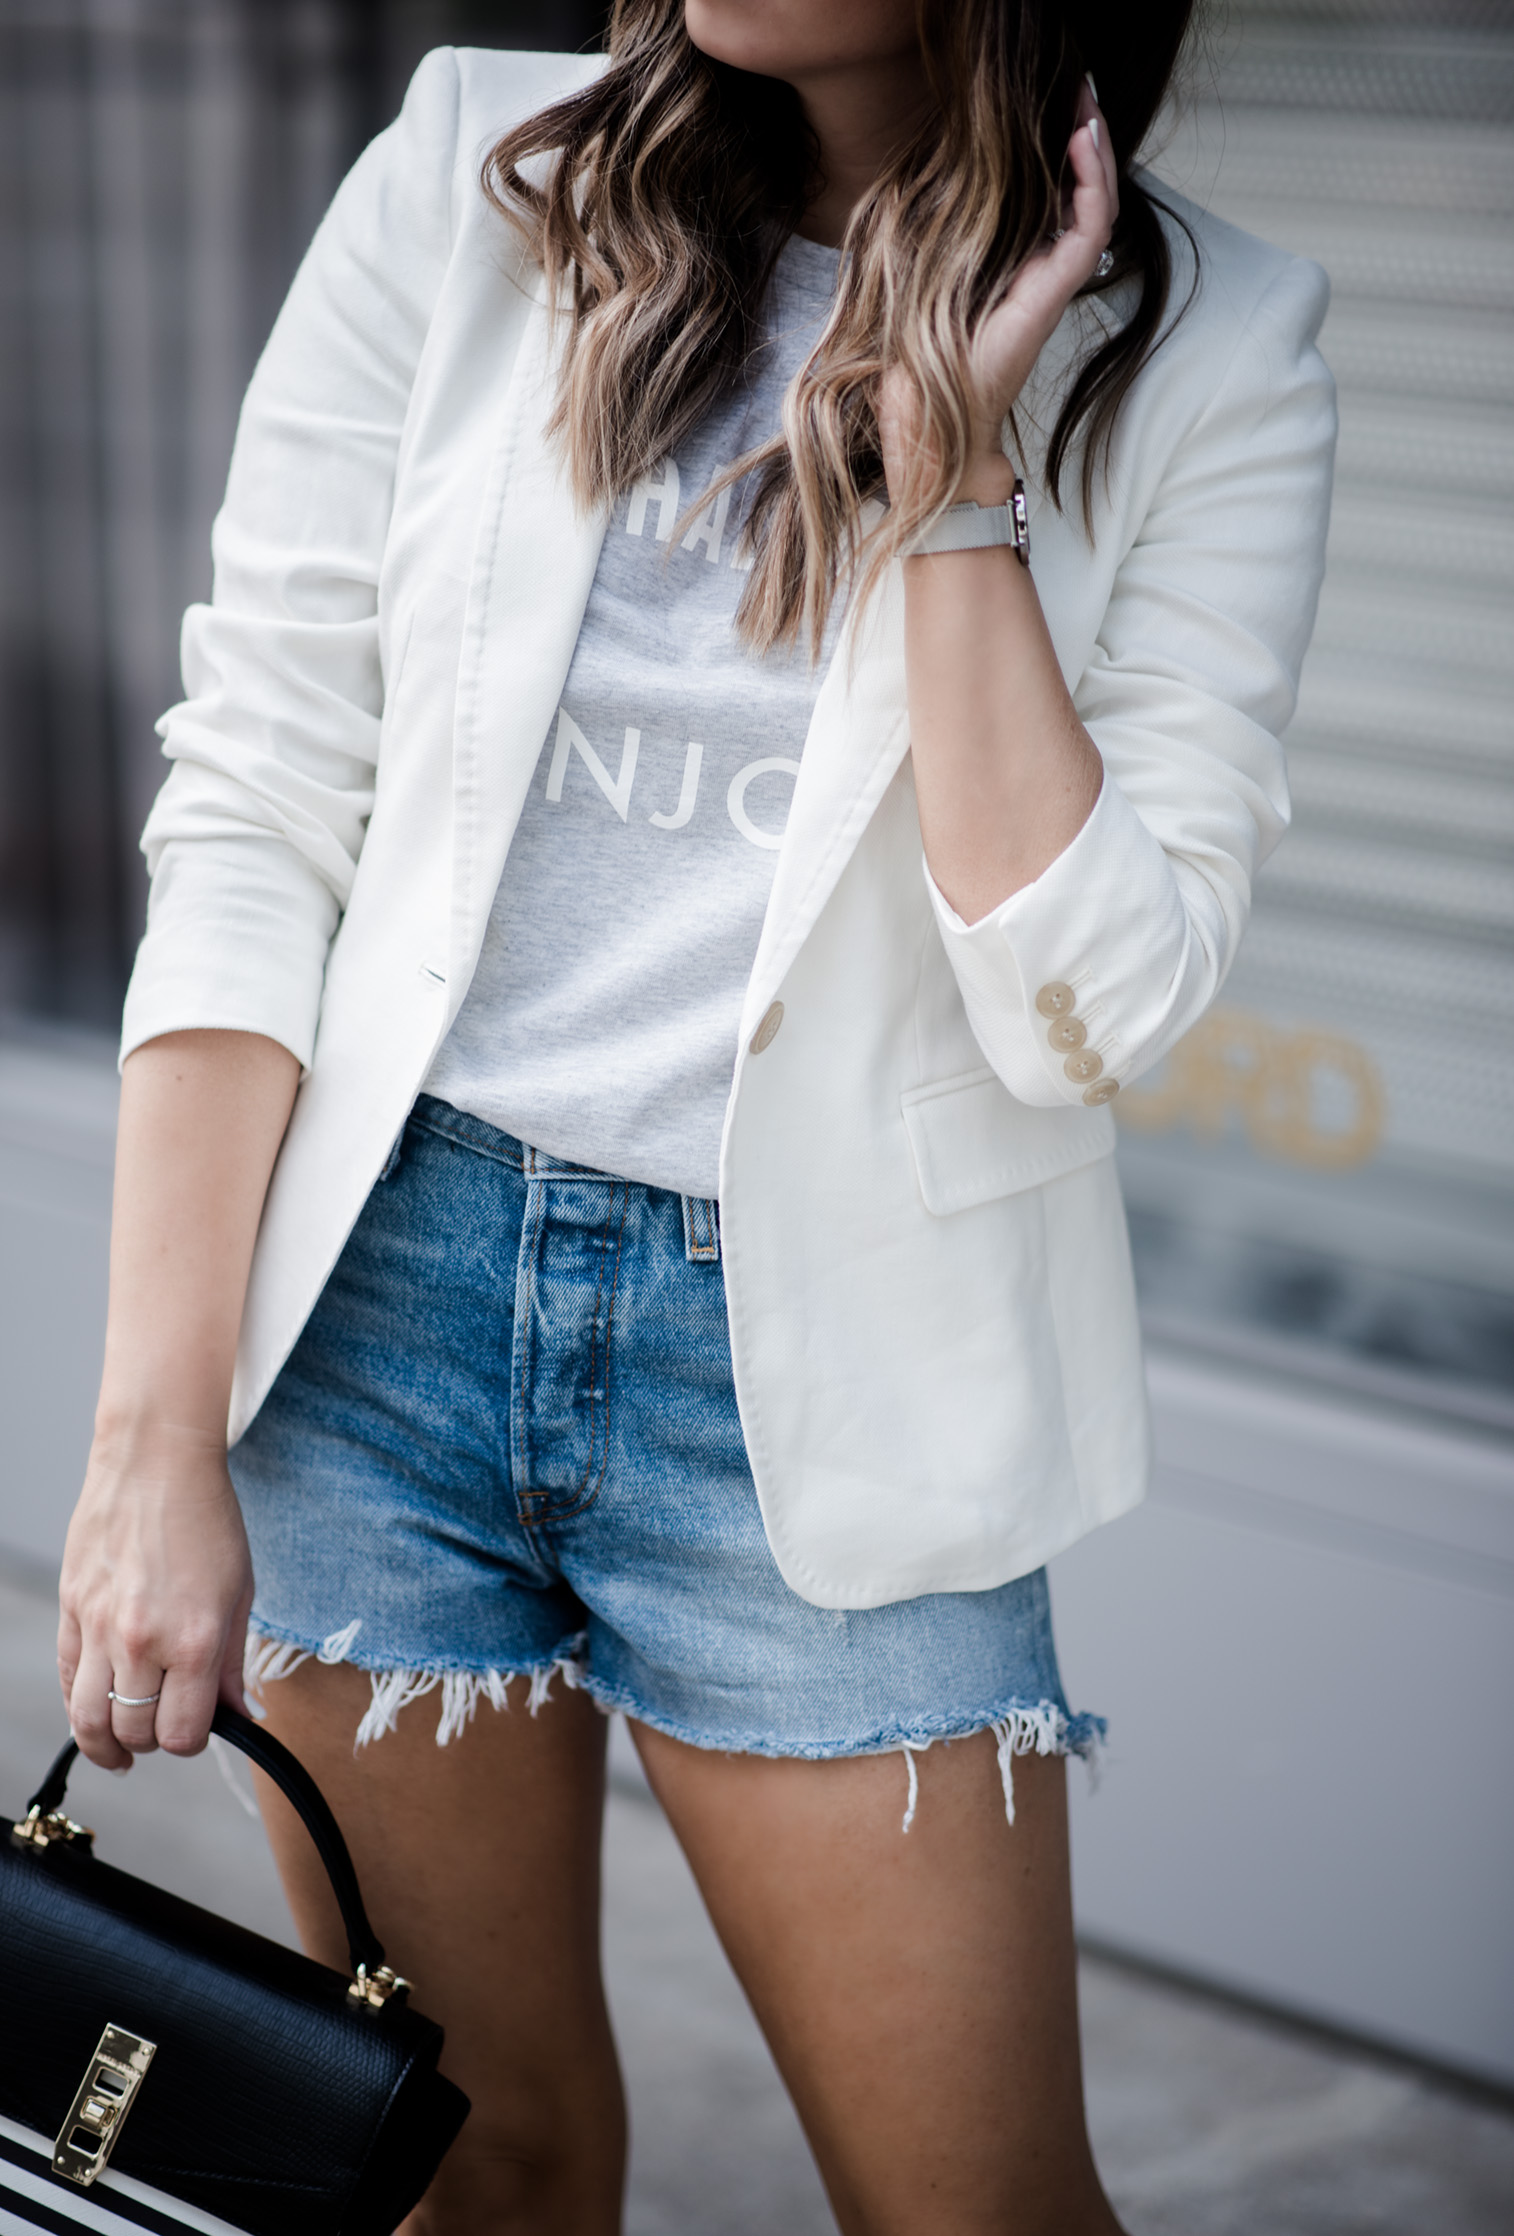 Tiffany Jais Houston fashion and lifestyle blogger | graphic tee outfits, how to wear a blazer with shorts, casual outfit ideas, blazer outfits,